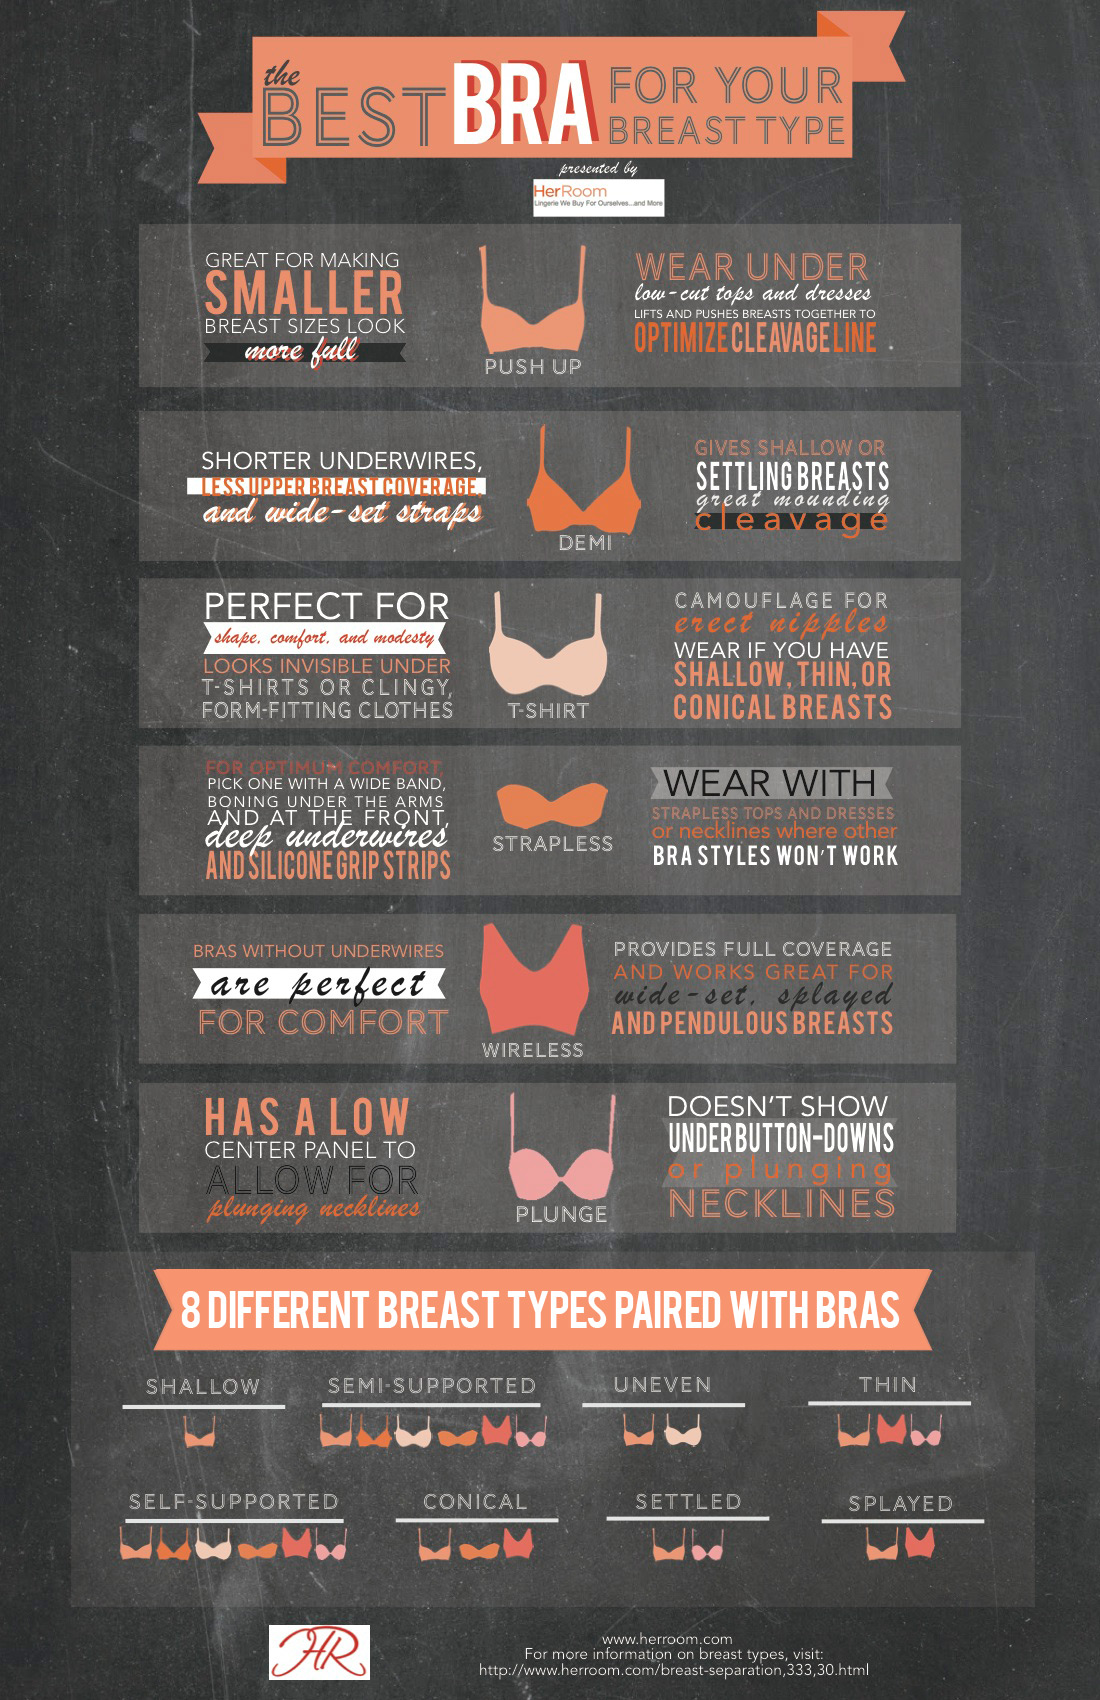 her-room-best_bra-infographic-jpeg-update.jpg